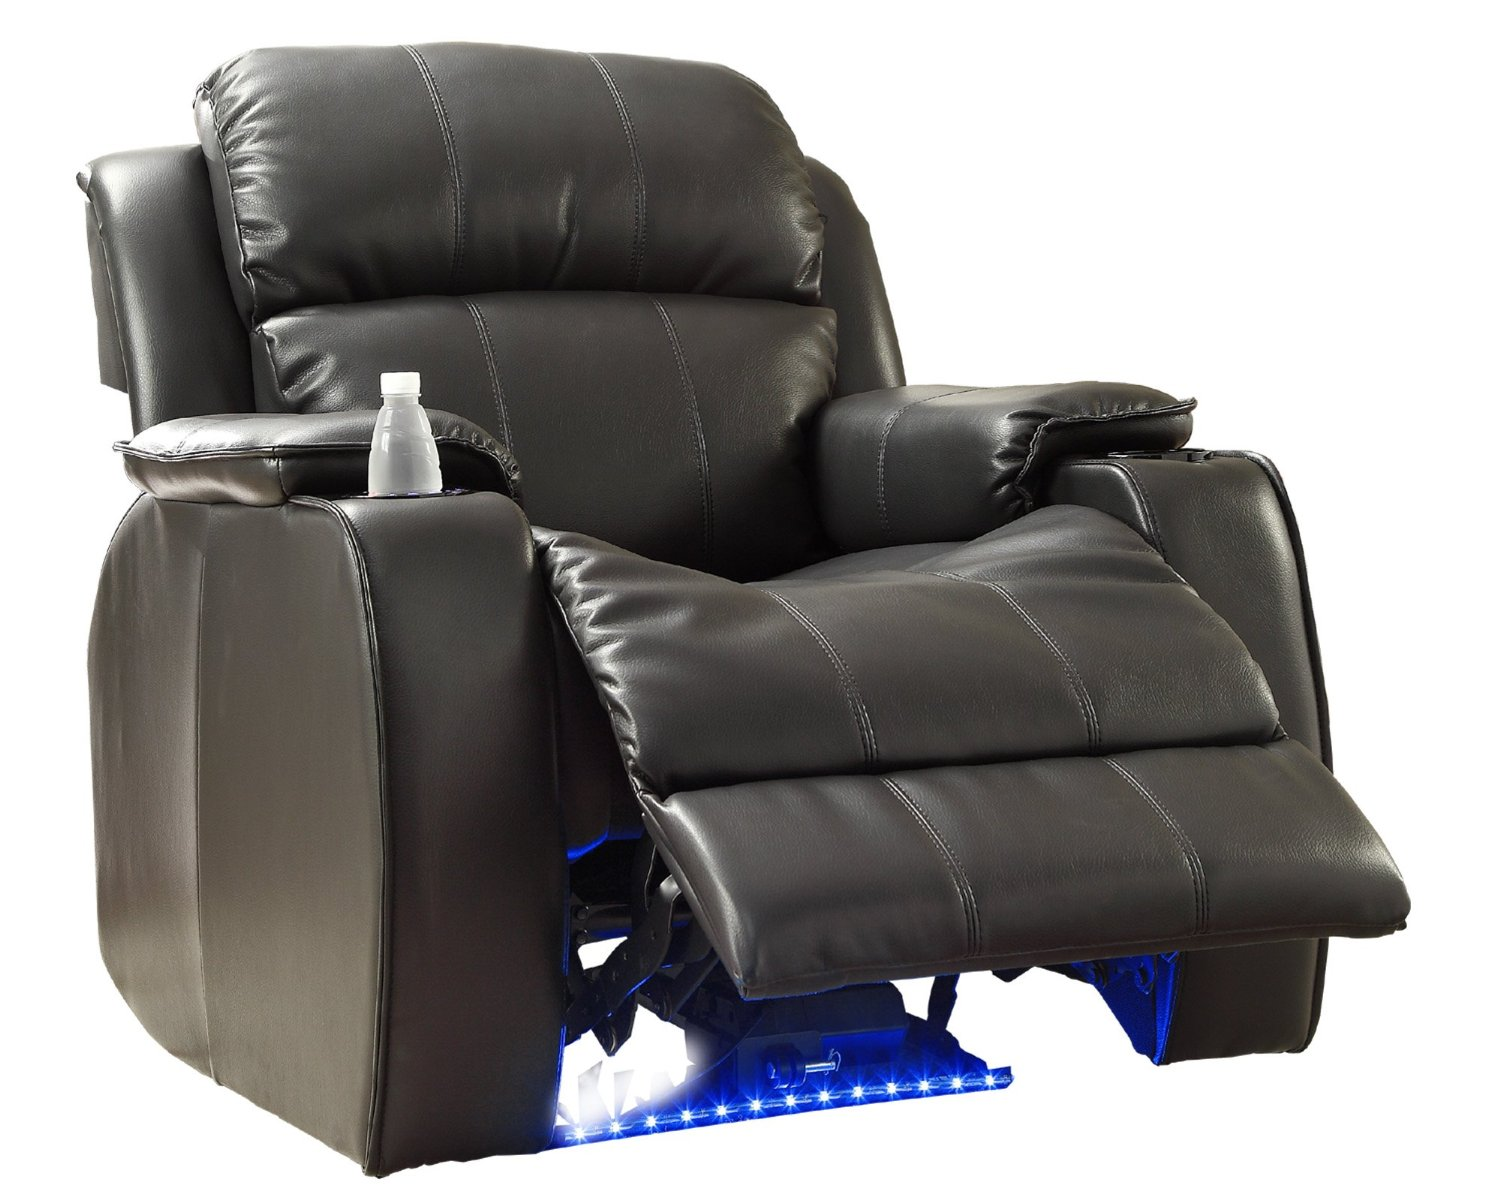 Homelegance 9745BLK-1 Jimmy Collection Upholstered Power Reclining Massage Chair, Black Bonded Leather-2